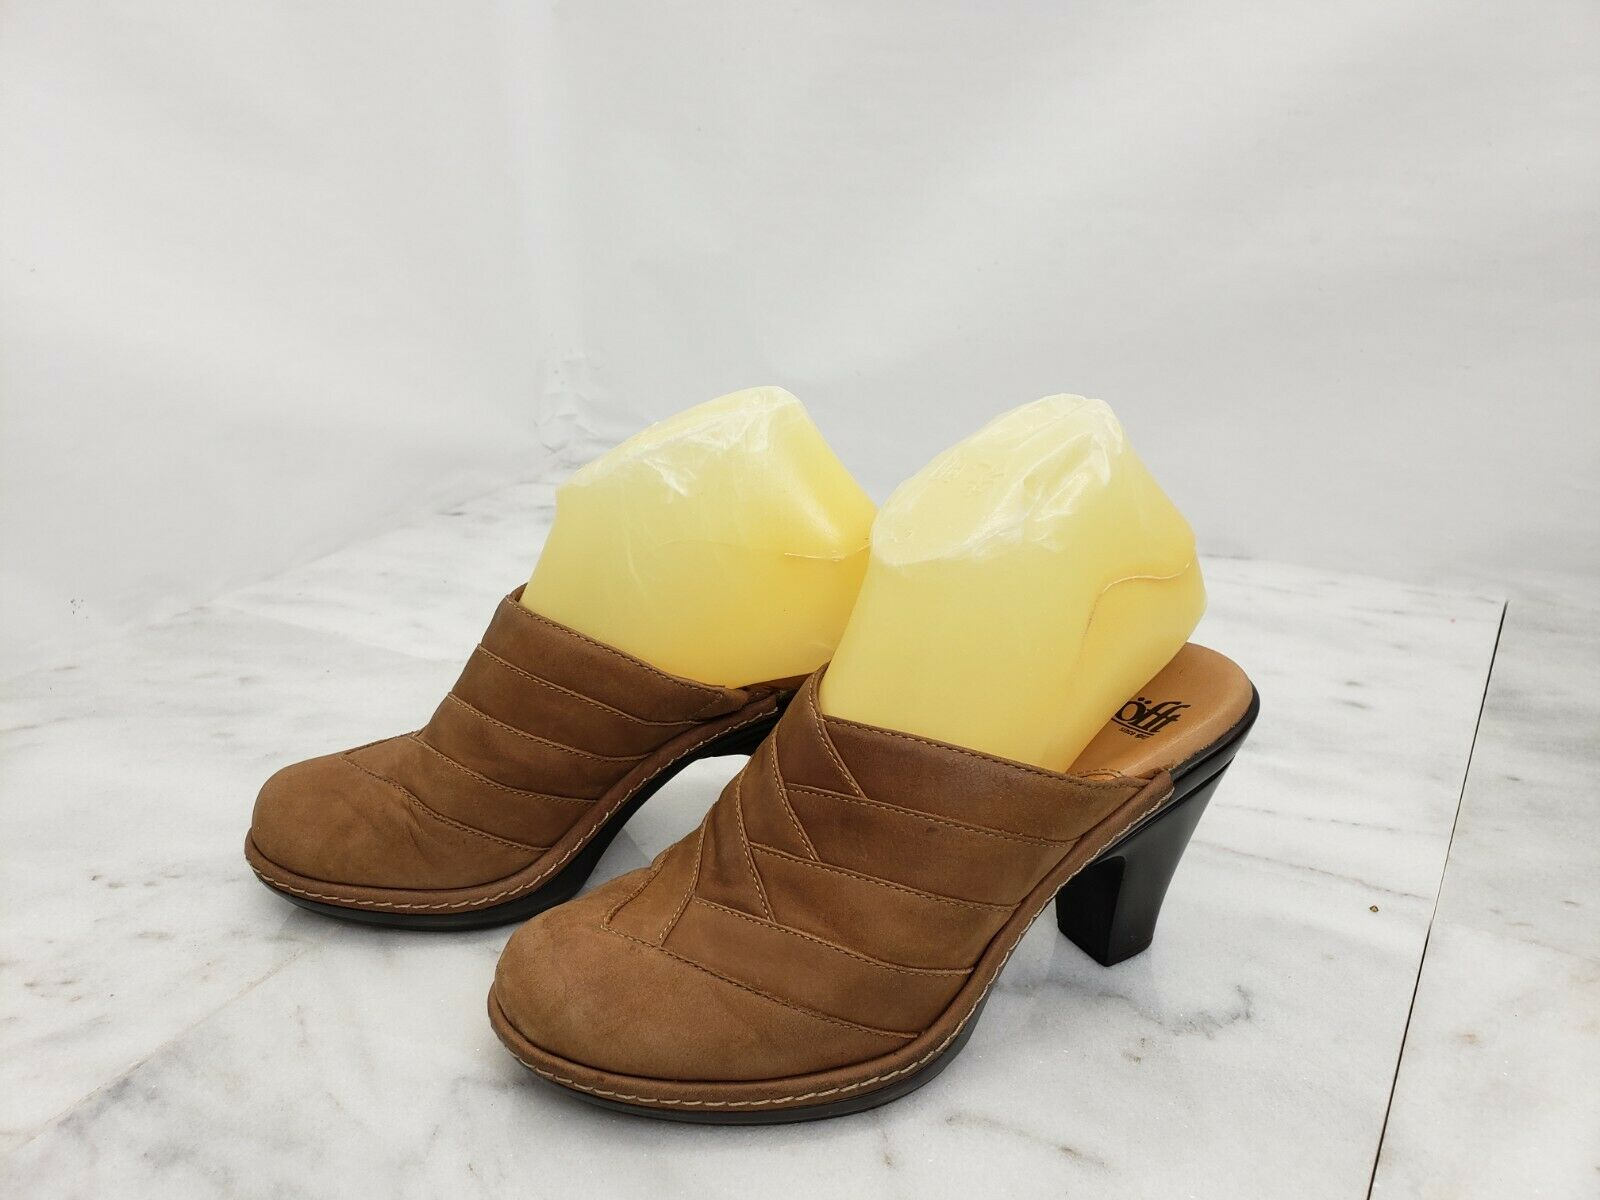 SOFFT Women's Shoes Soft Leather Slip On Heel Clogs Brown Size 6 M